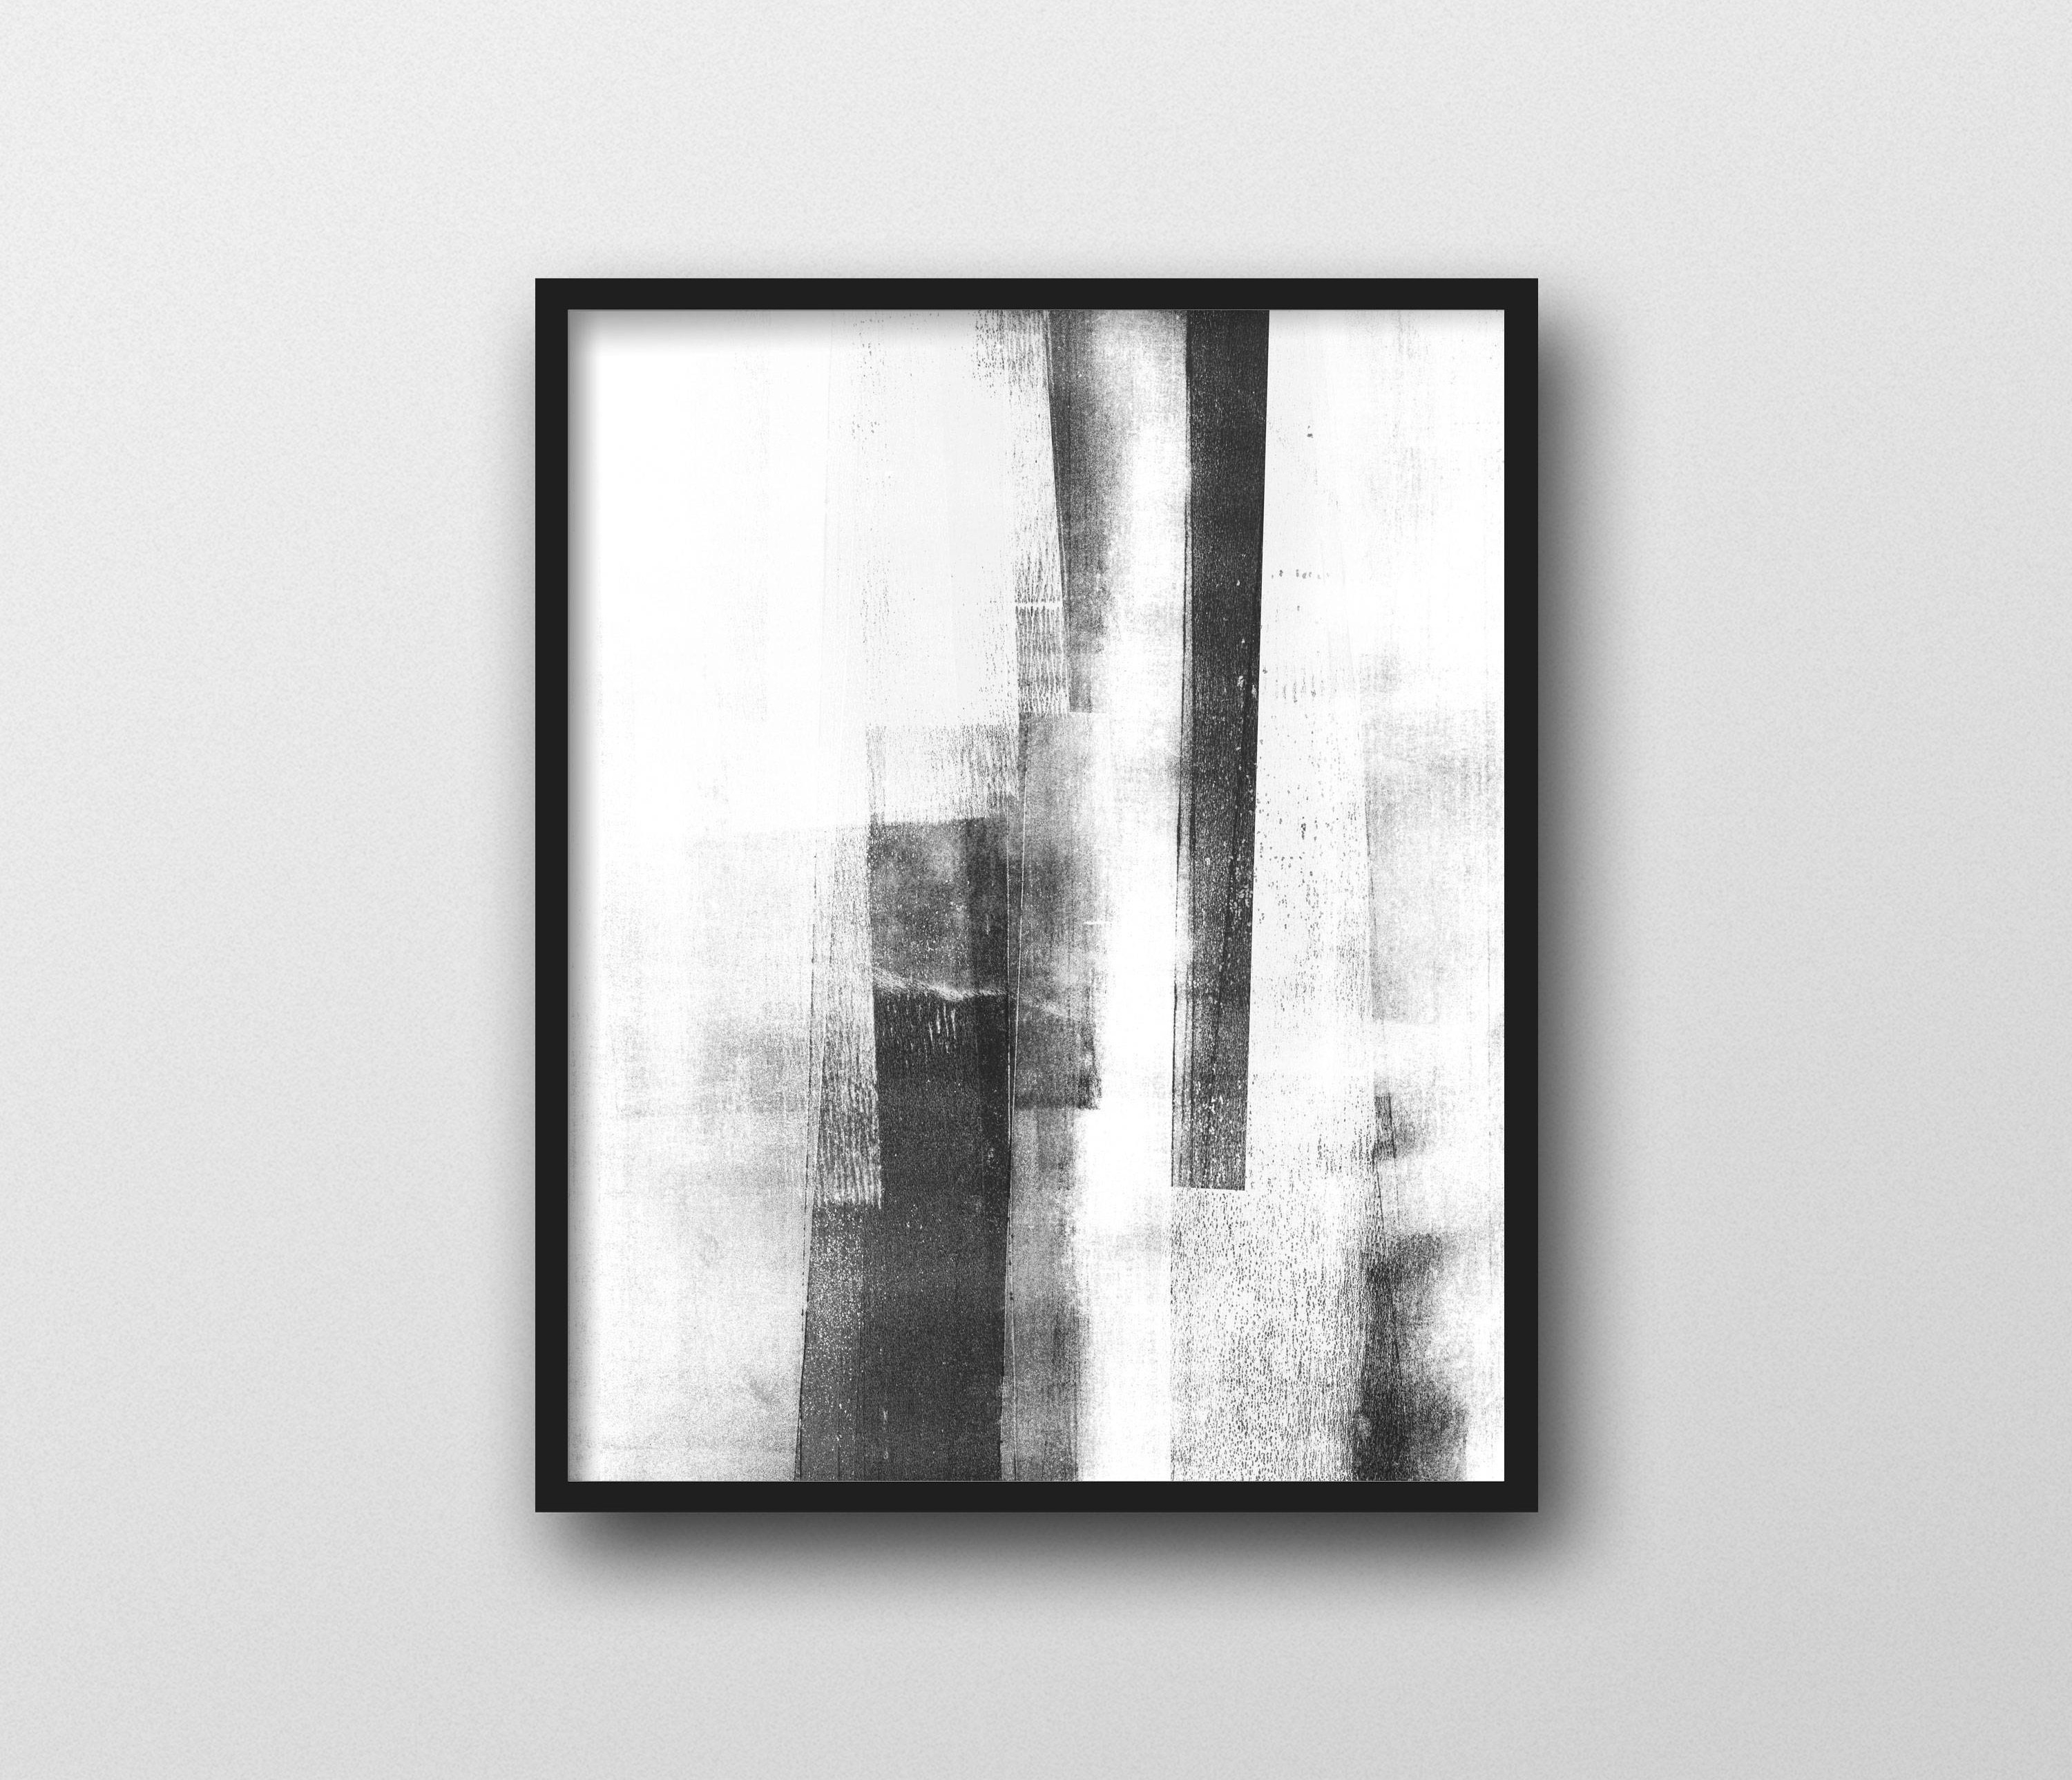 Black & White Wall Art Prints, Scandinavian Art, Minimalist Poster Intended For 2018 Abstract Wall Art Posters (View 8 of 20)